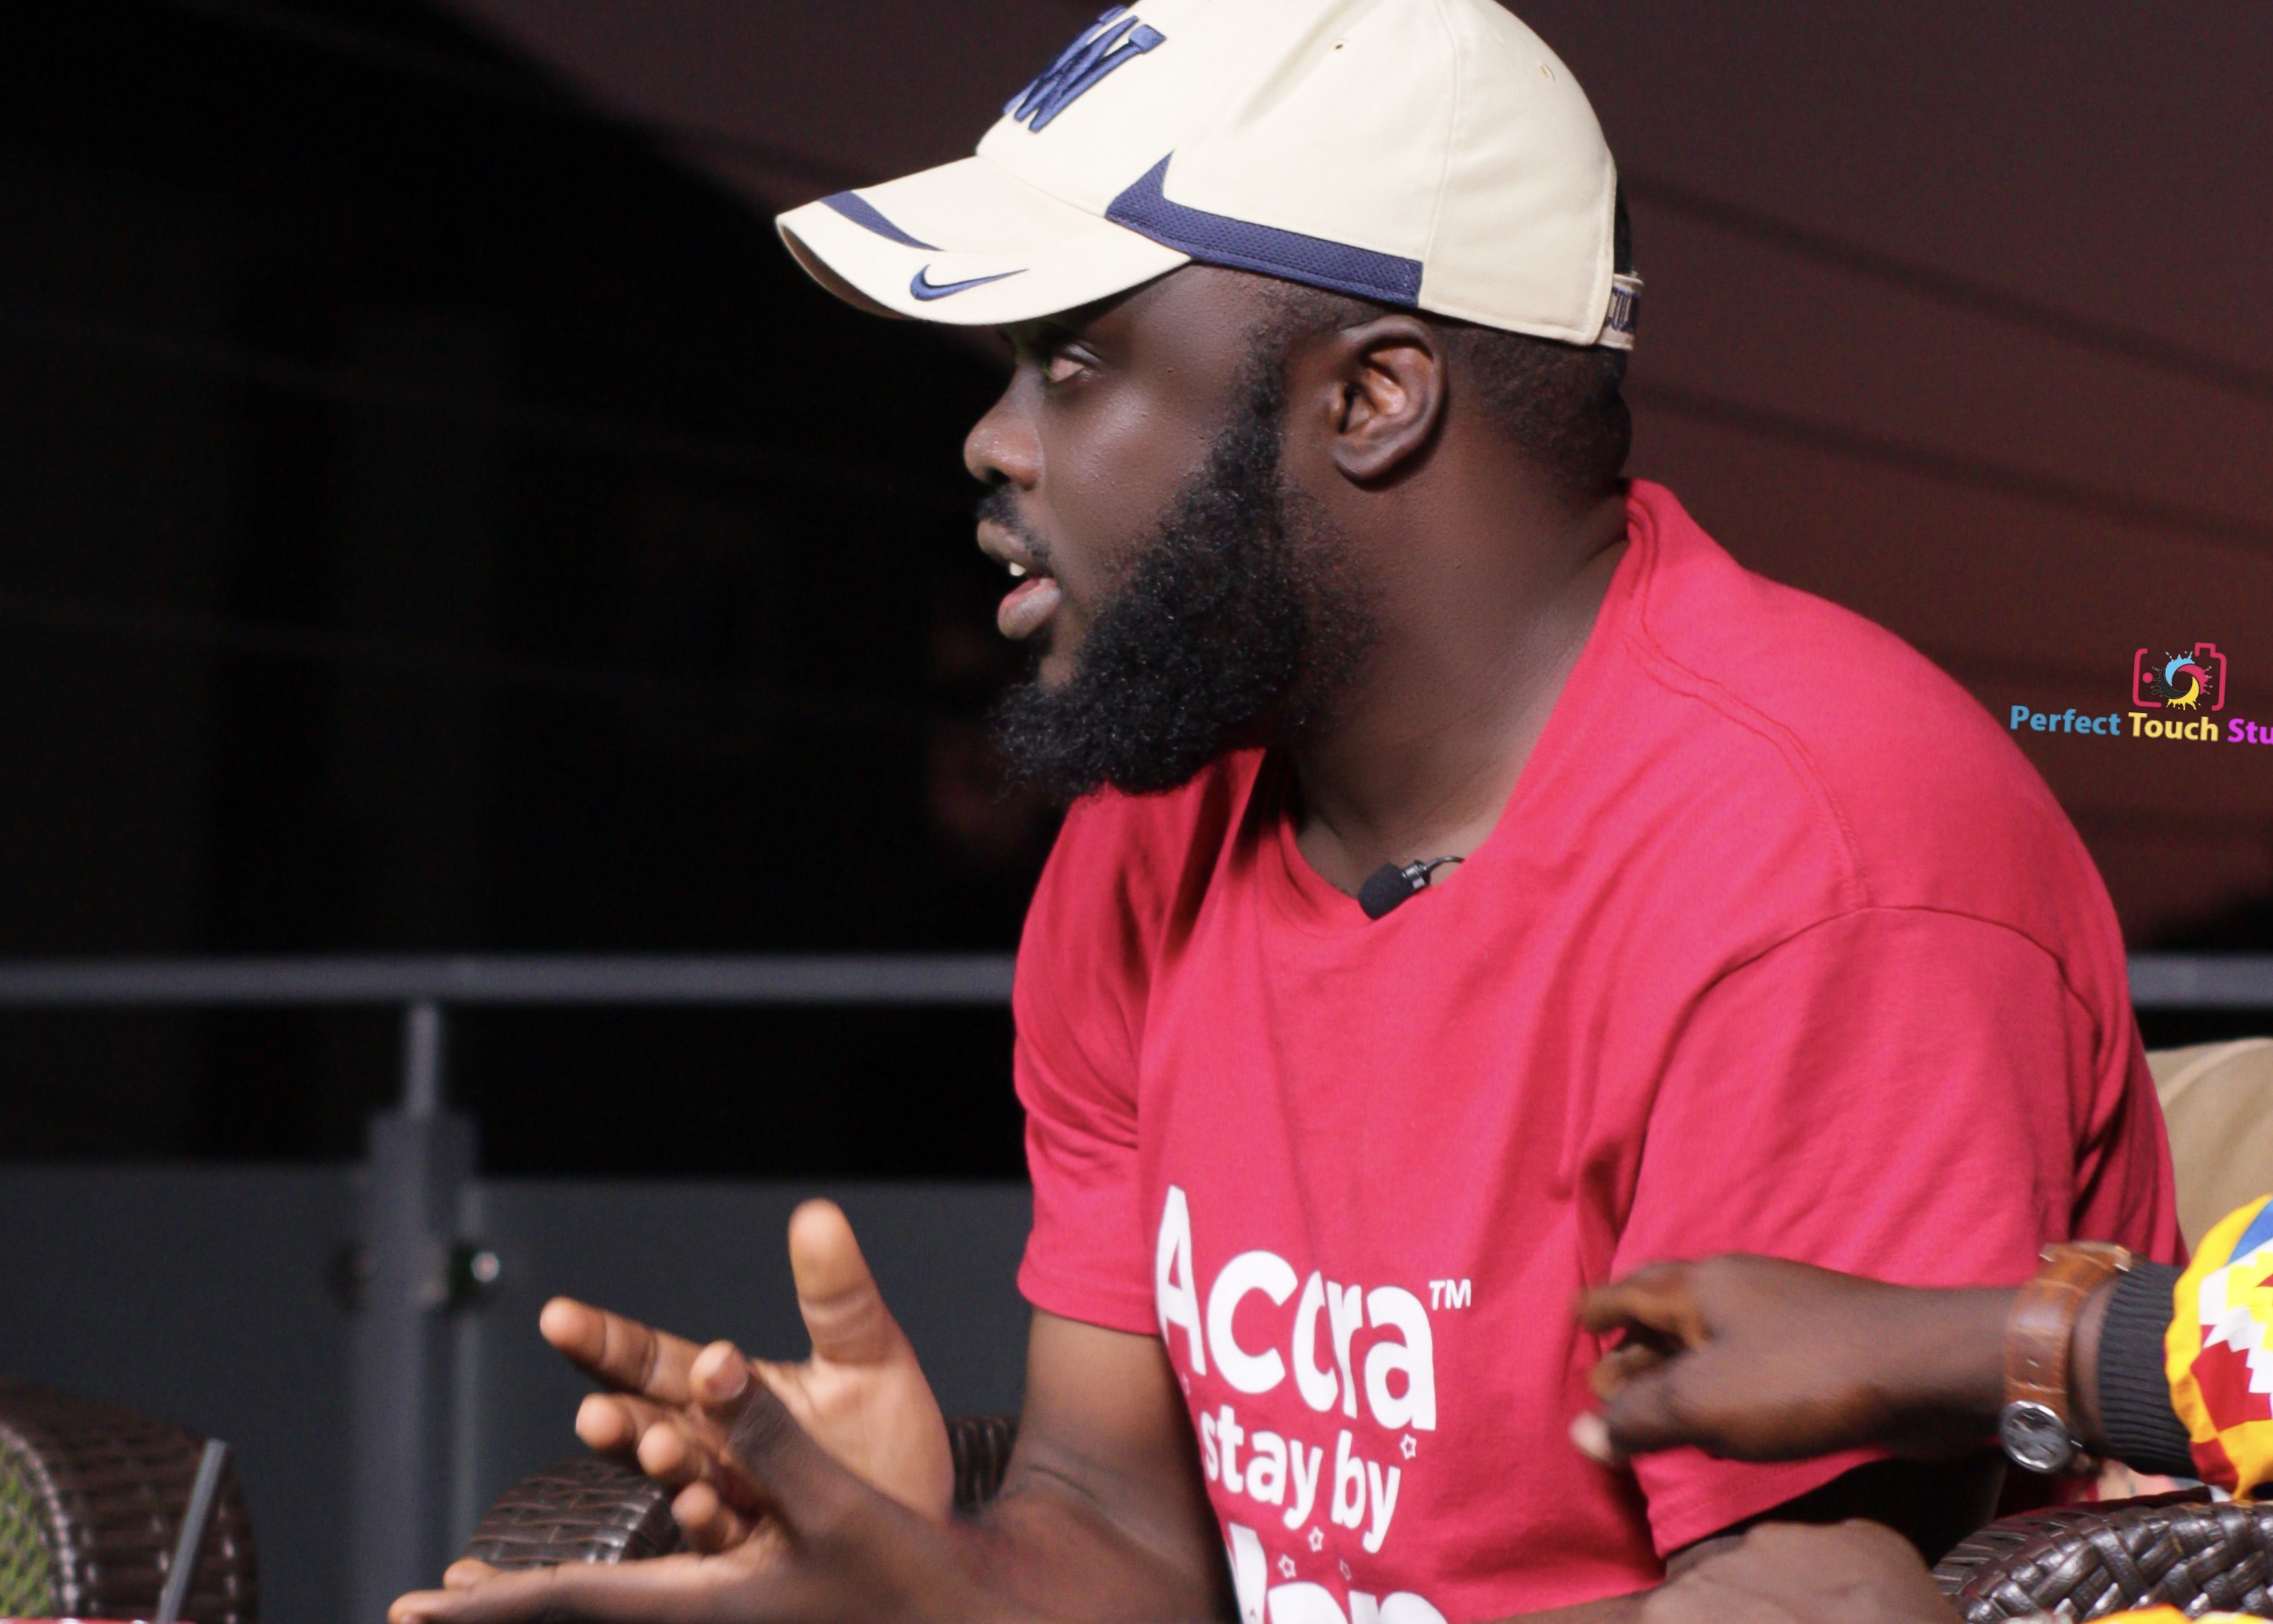 I don't troll celebrities, I just share my opinions on issues – Kwadwo Sheldon recuses himself from cyber bullying